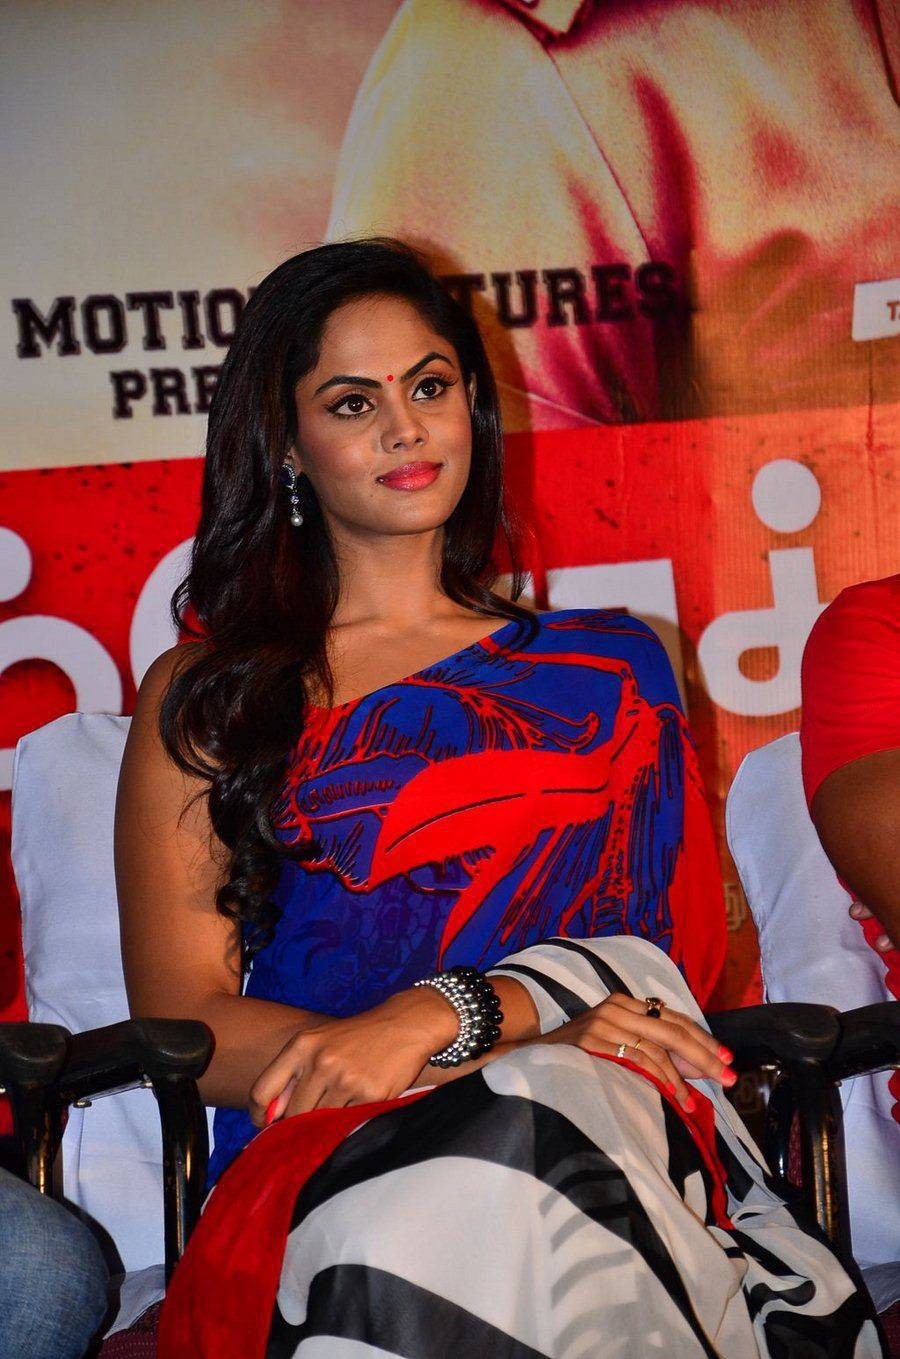 Karthika Nair,actress Karthika Nair,Karthika Nair pics,Karthika Nair images,Karthika Nair photos,hot Karthika Nair,Karthika Nair hot pics,Purampokku,Karthika Nair in Purampokku,Karthika Nair Latest Pics,Karthika Nair Latest images,Karthika Nair Latest pho